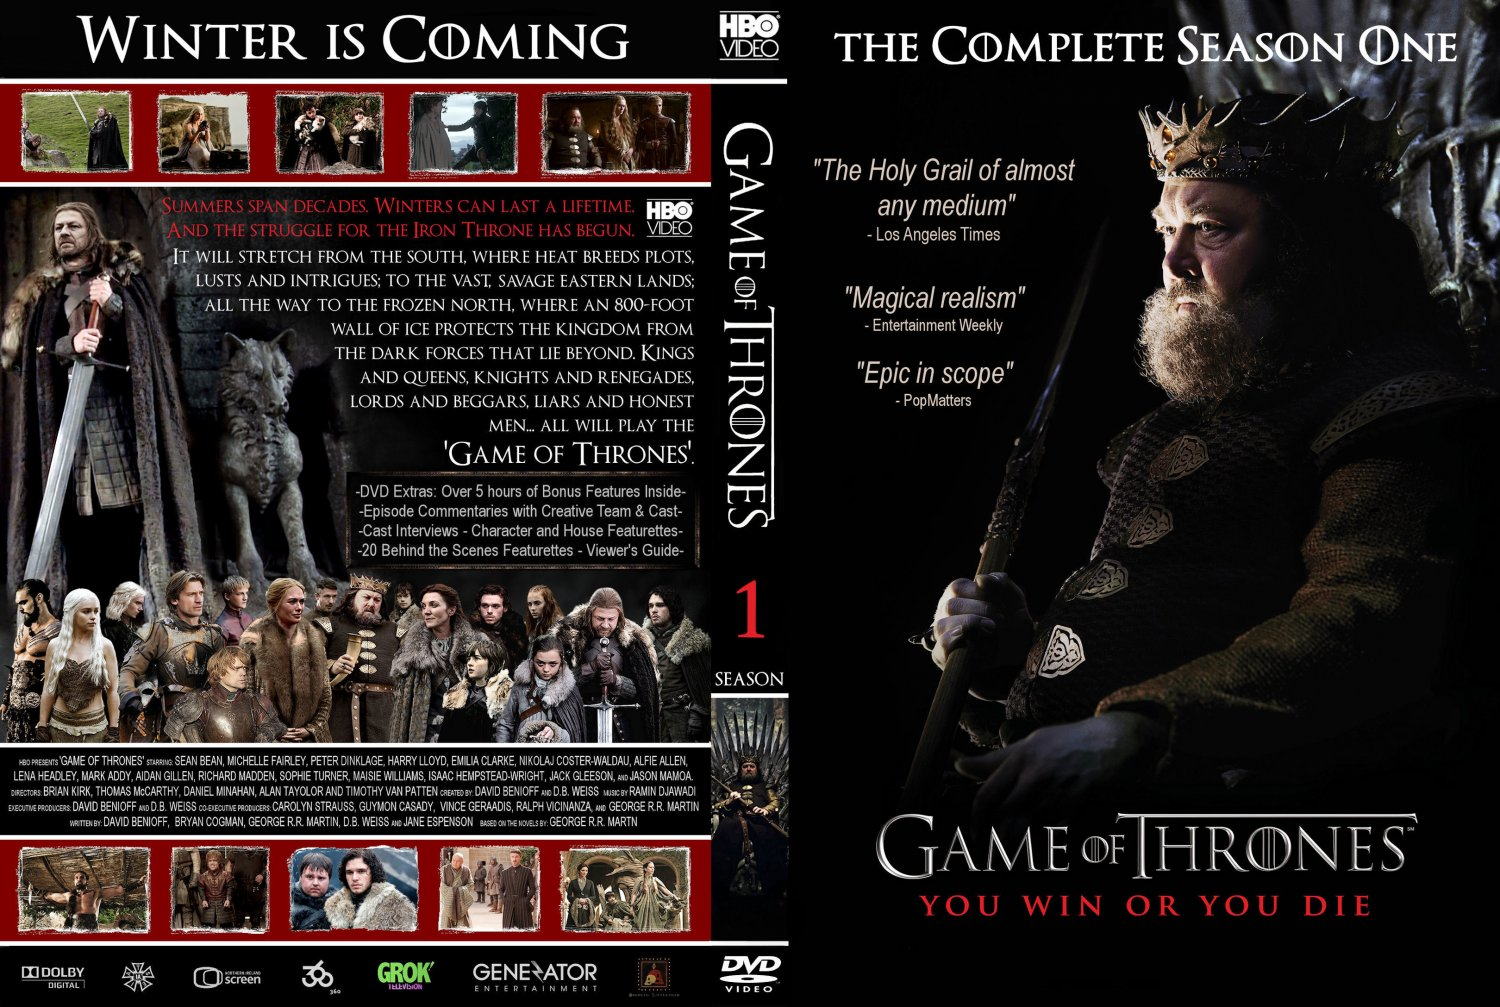 the gallery for game of thrones season 1 dvd cover. Black Bedroom Furniture Sets. Home Design Ideas